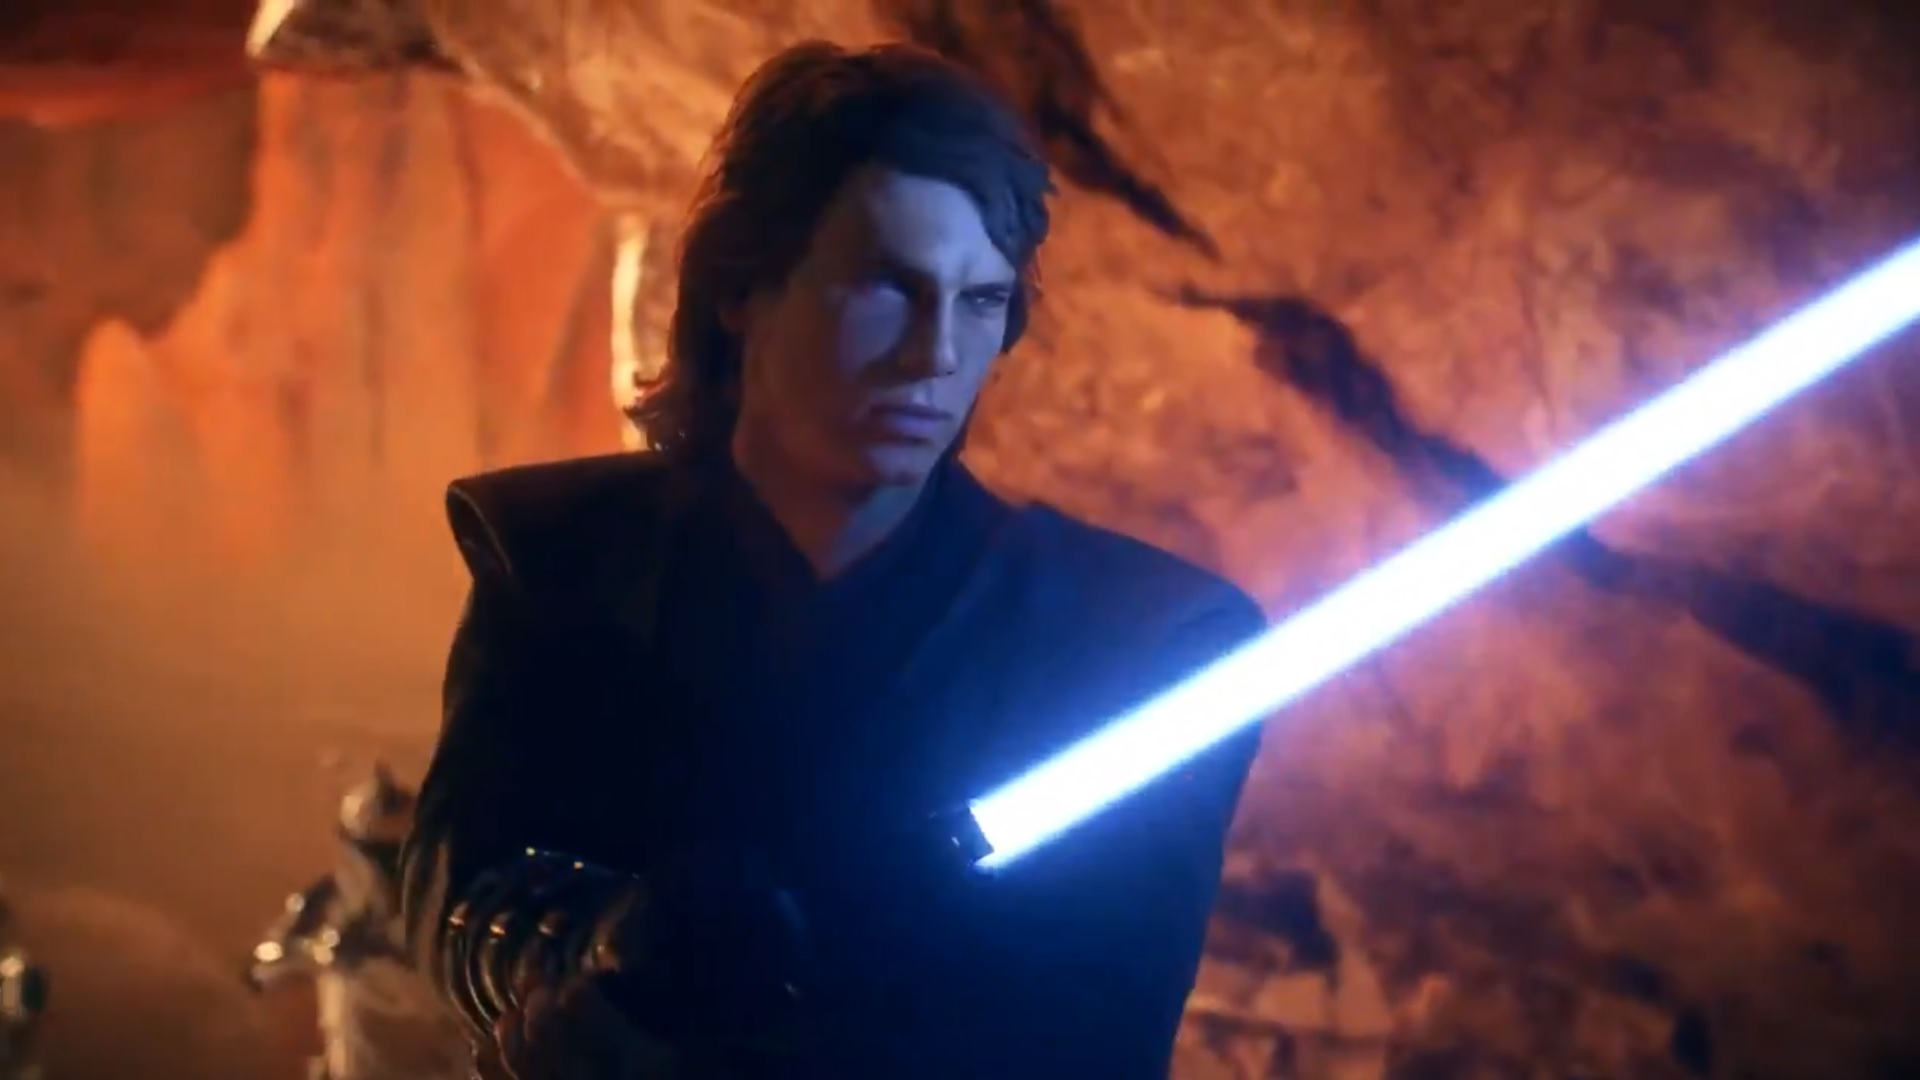 Star Wars Battlefront 2 is adding Anakin Skywalker to the roster